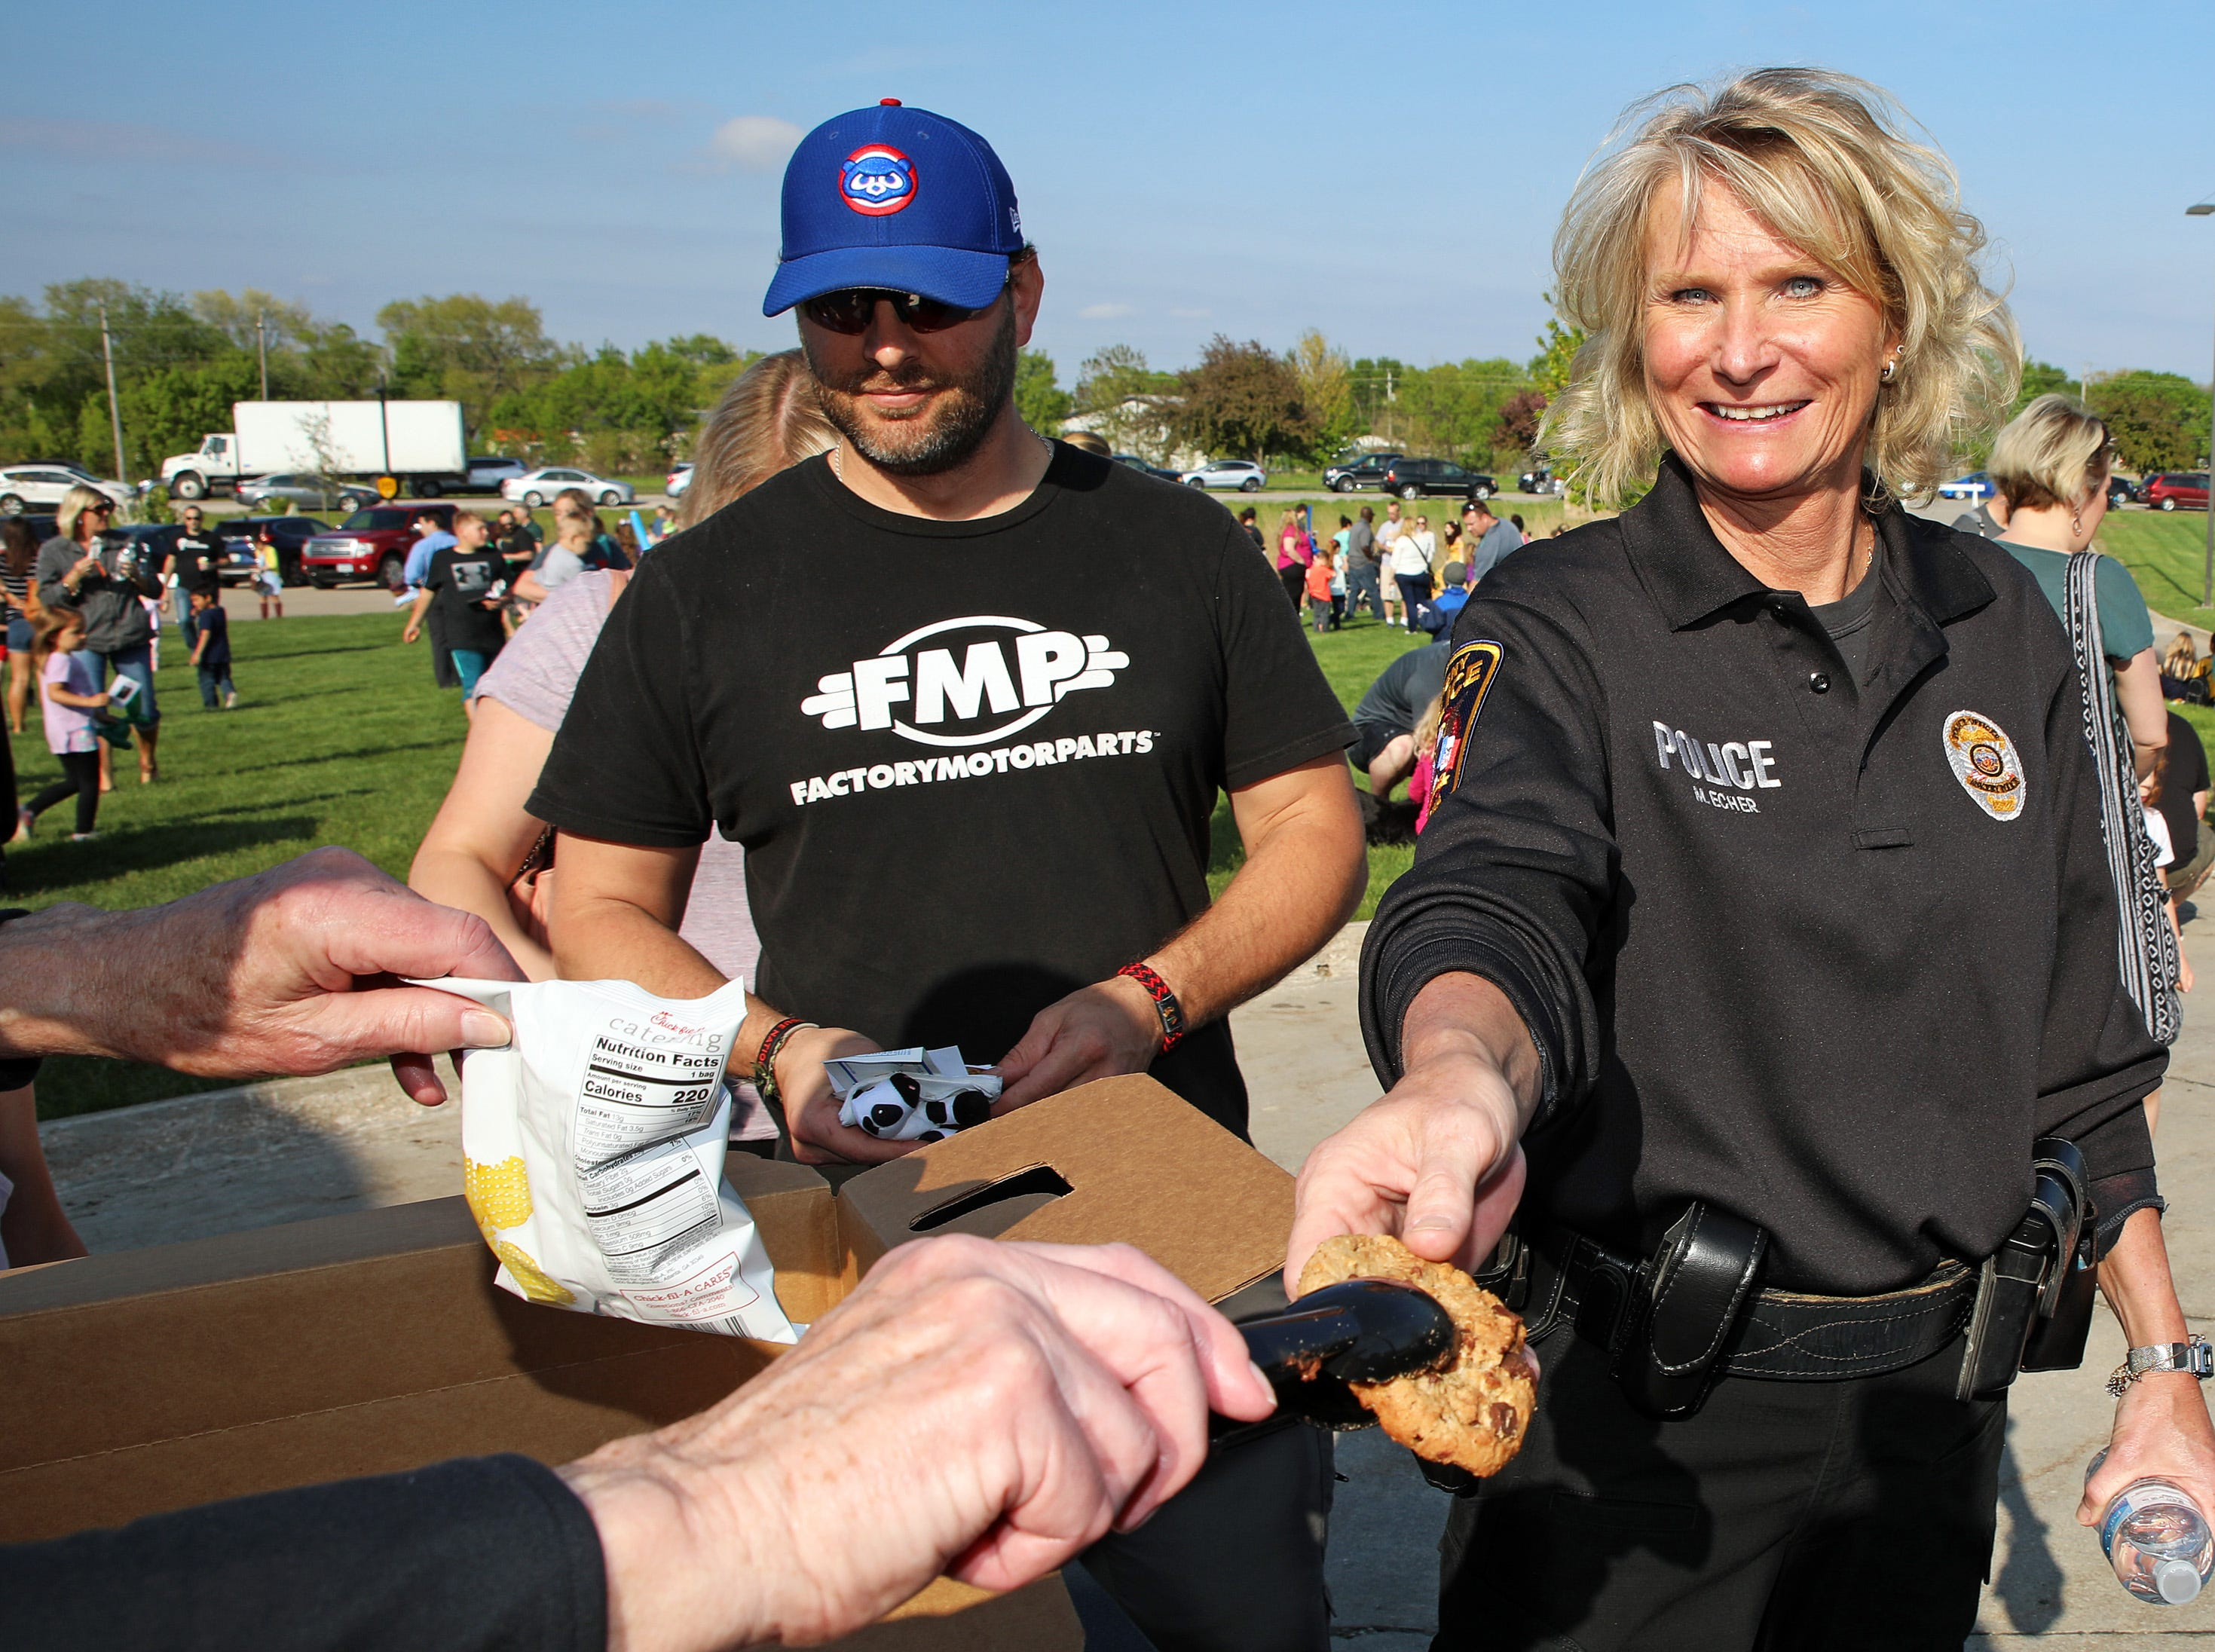 Ankeny Police Captain Makai Echer receives a cookie during the Ankeny Police Week Community Picnic on Tuesday, May 14, 2019 at the Ankeny Police Headquarters located at 411 SW Ordnance Road. The event featured a tour of the police station, magician Jonathon May, free Chick Fil-A sandwiches for the first 1,000 guests, free Kona Ice, temporary tattoos, and a great opportunity to meet the officers who protect and serve the city of Ankeny.